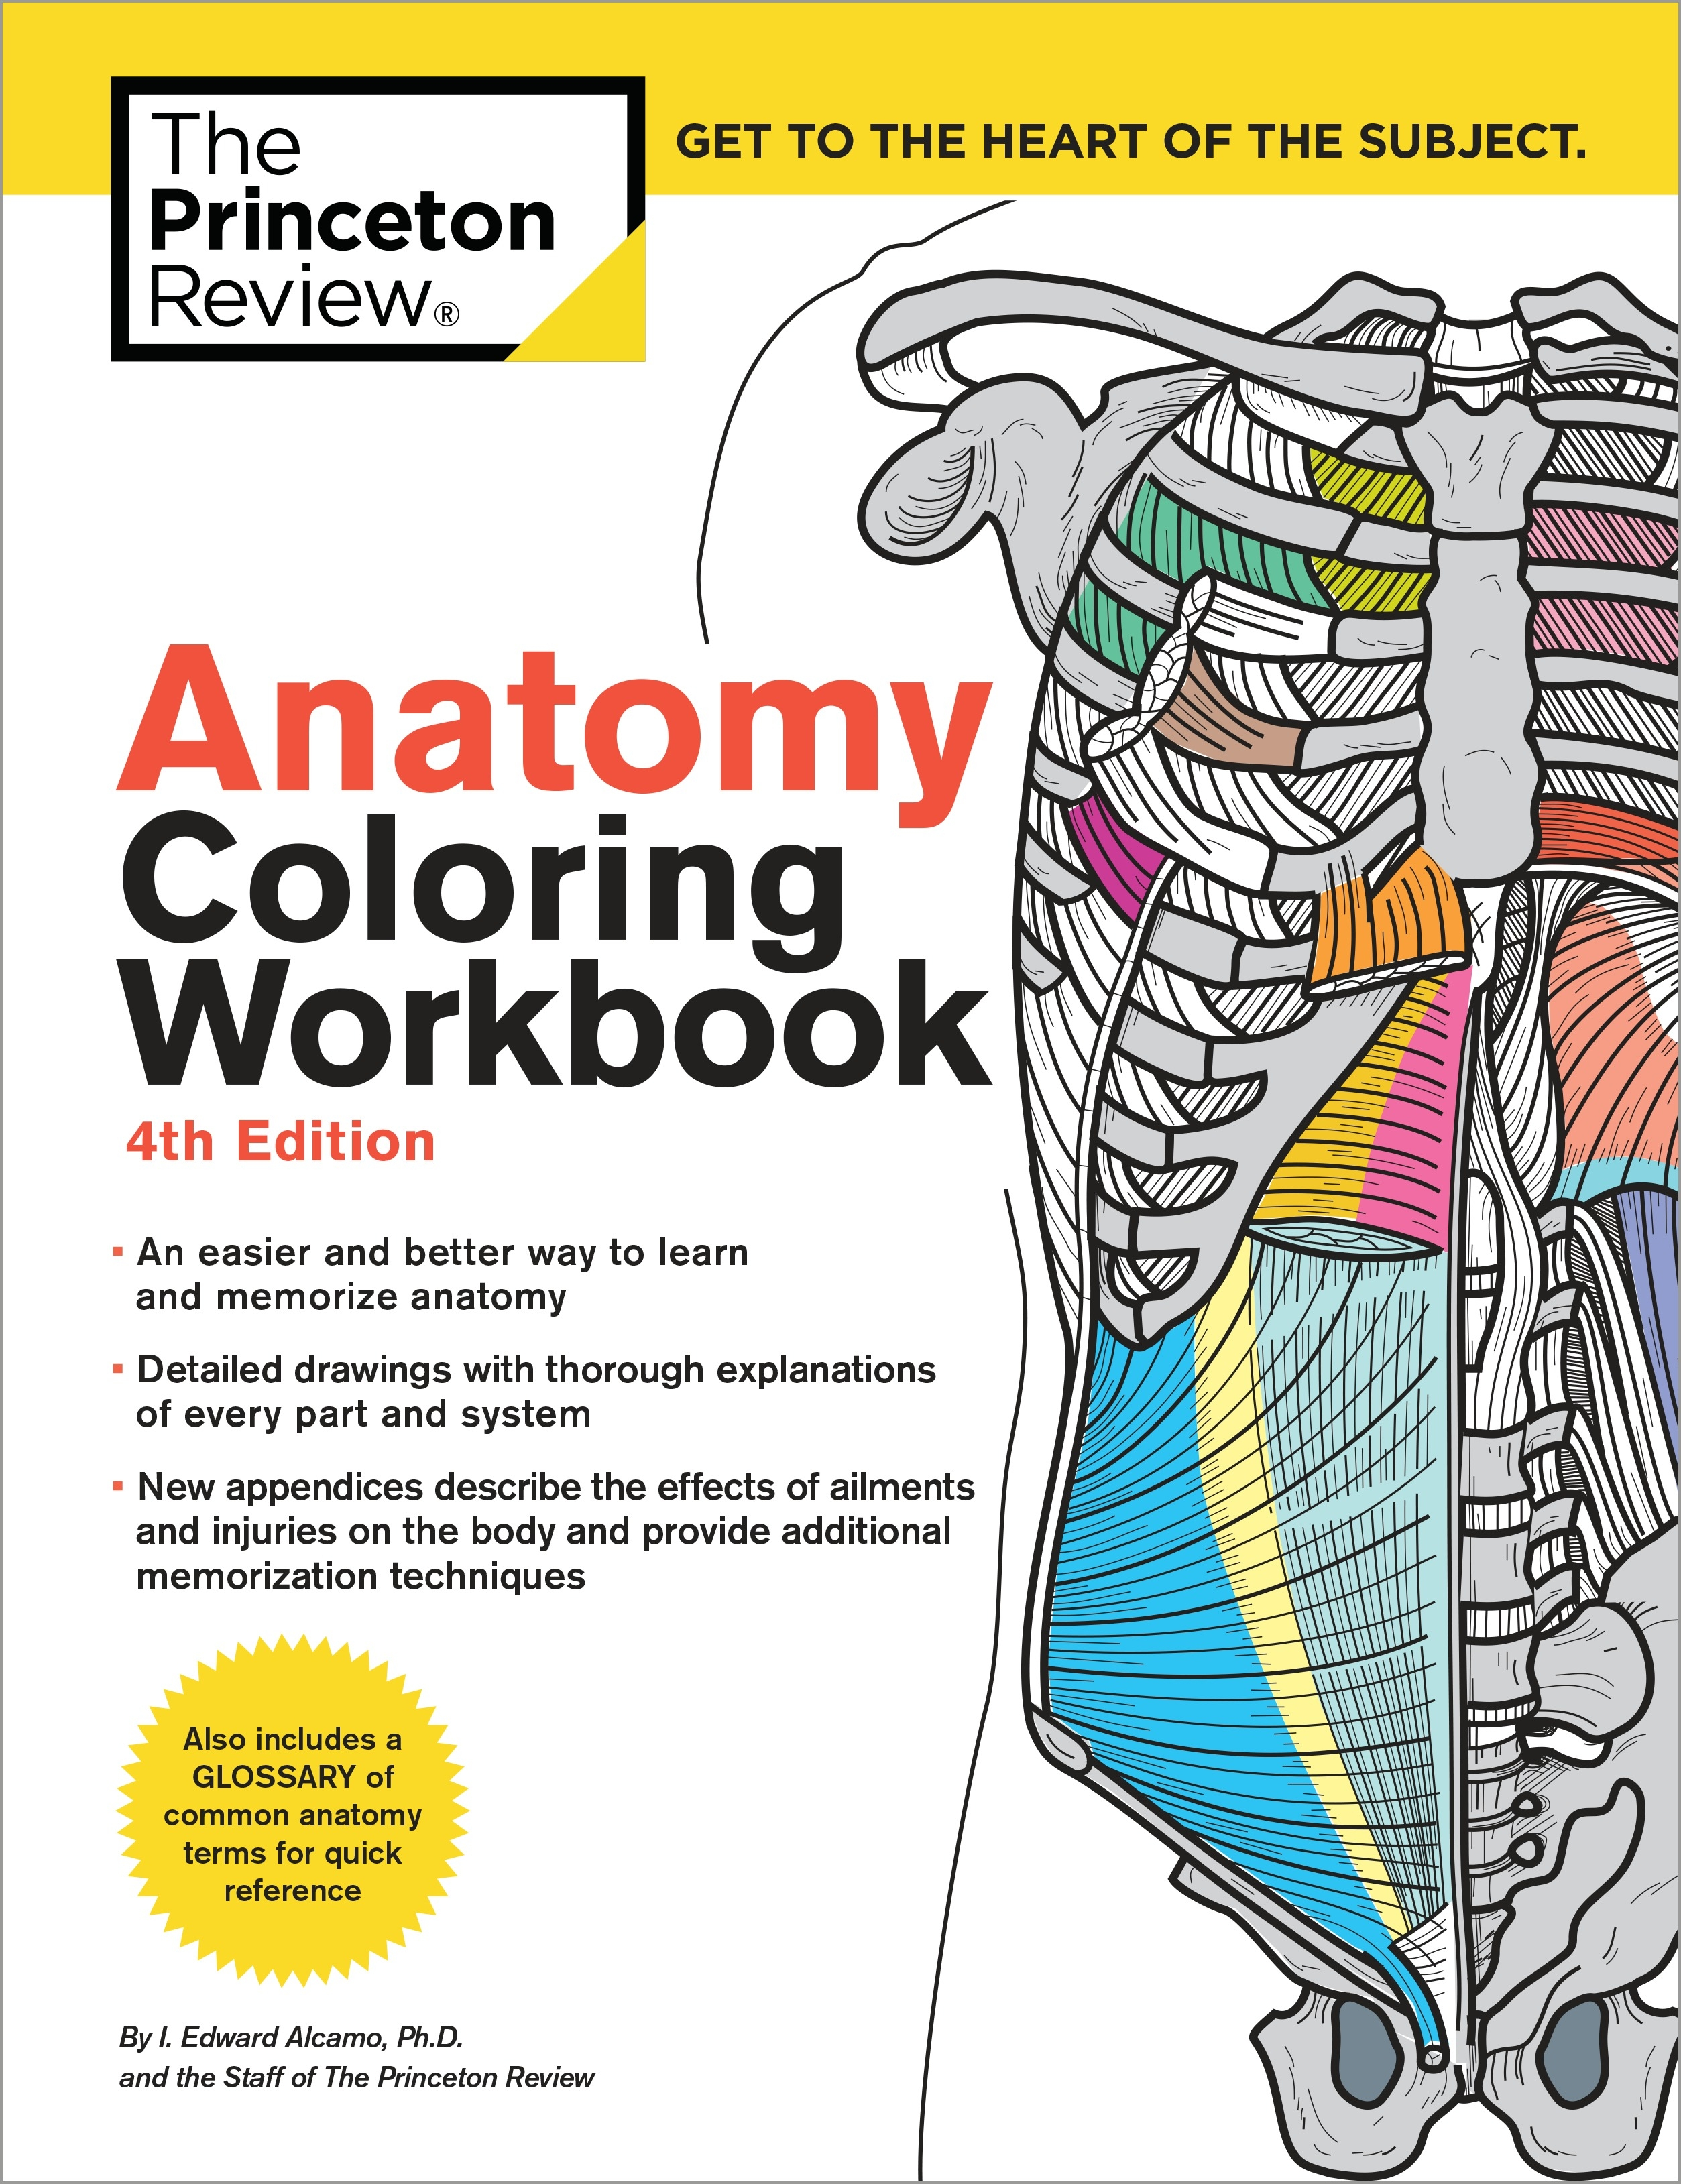 Anatomy Coloring Workbook 4th Edition By The Princeton Review